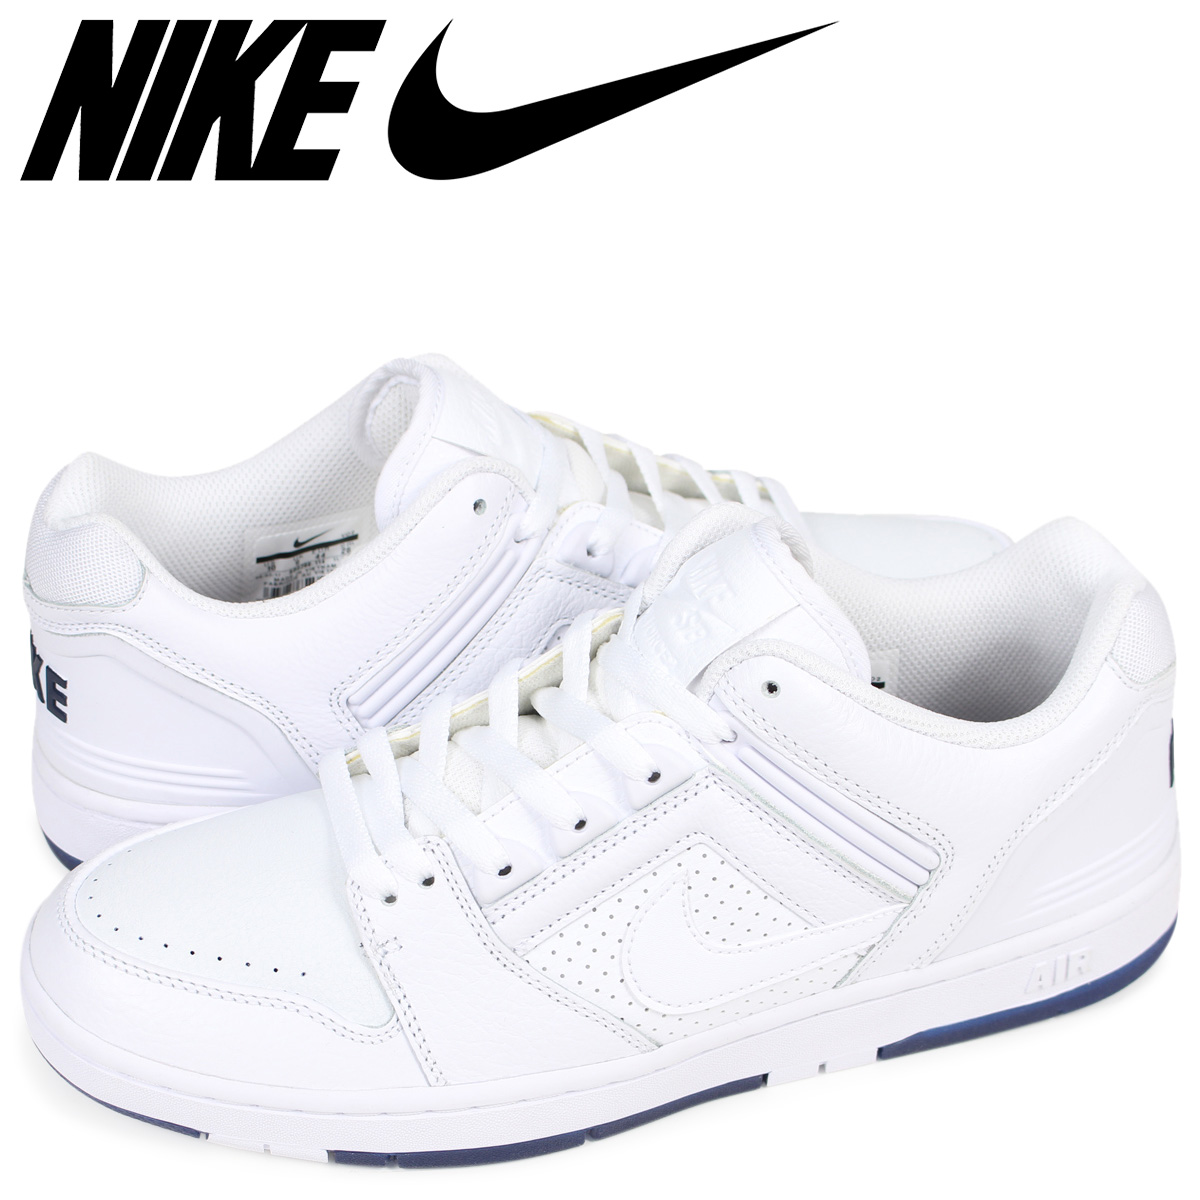 NIKE AIR FORCE 2 LOW KEVIN BRADLEY Nike SB air force 2 sneakers men white  AO0298,114